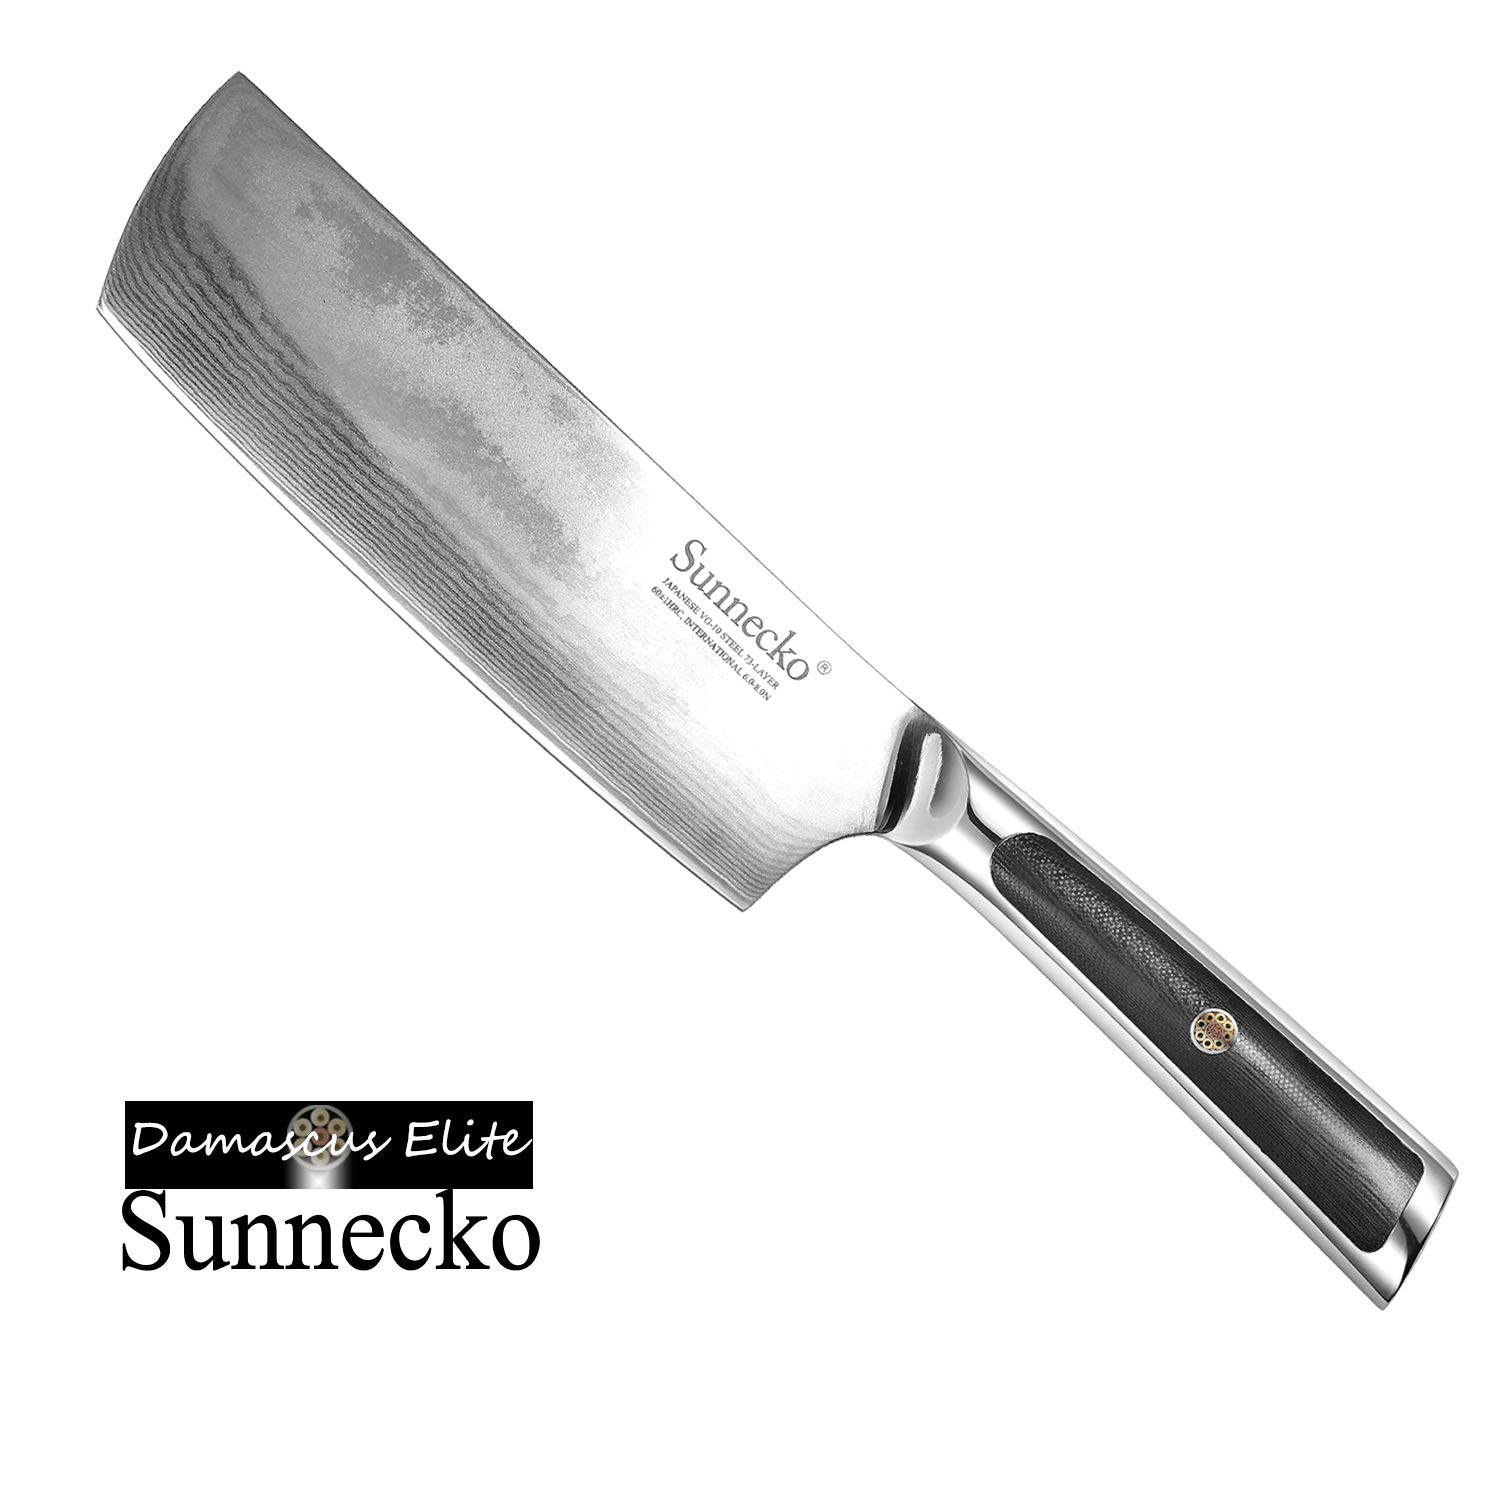 Sunnecko Kitchen Knife 7 Inch, Vegetable Cleaver Chinese Chef's Knife Nakiri Usba, Damascus Japanese VG-10 Core 73 Layers, All Metal Forged G10 Handle for Home and Restaurant